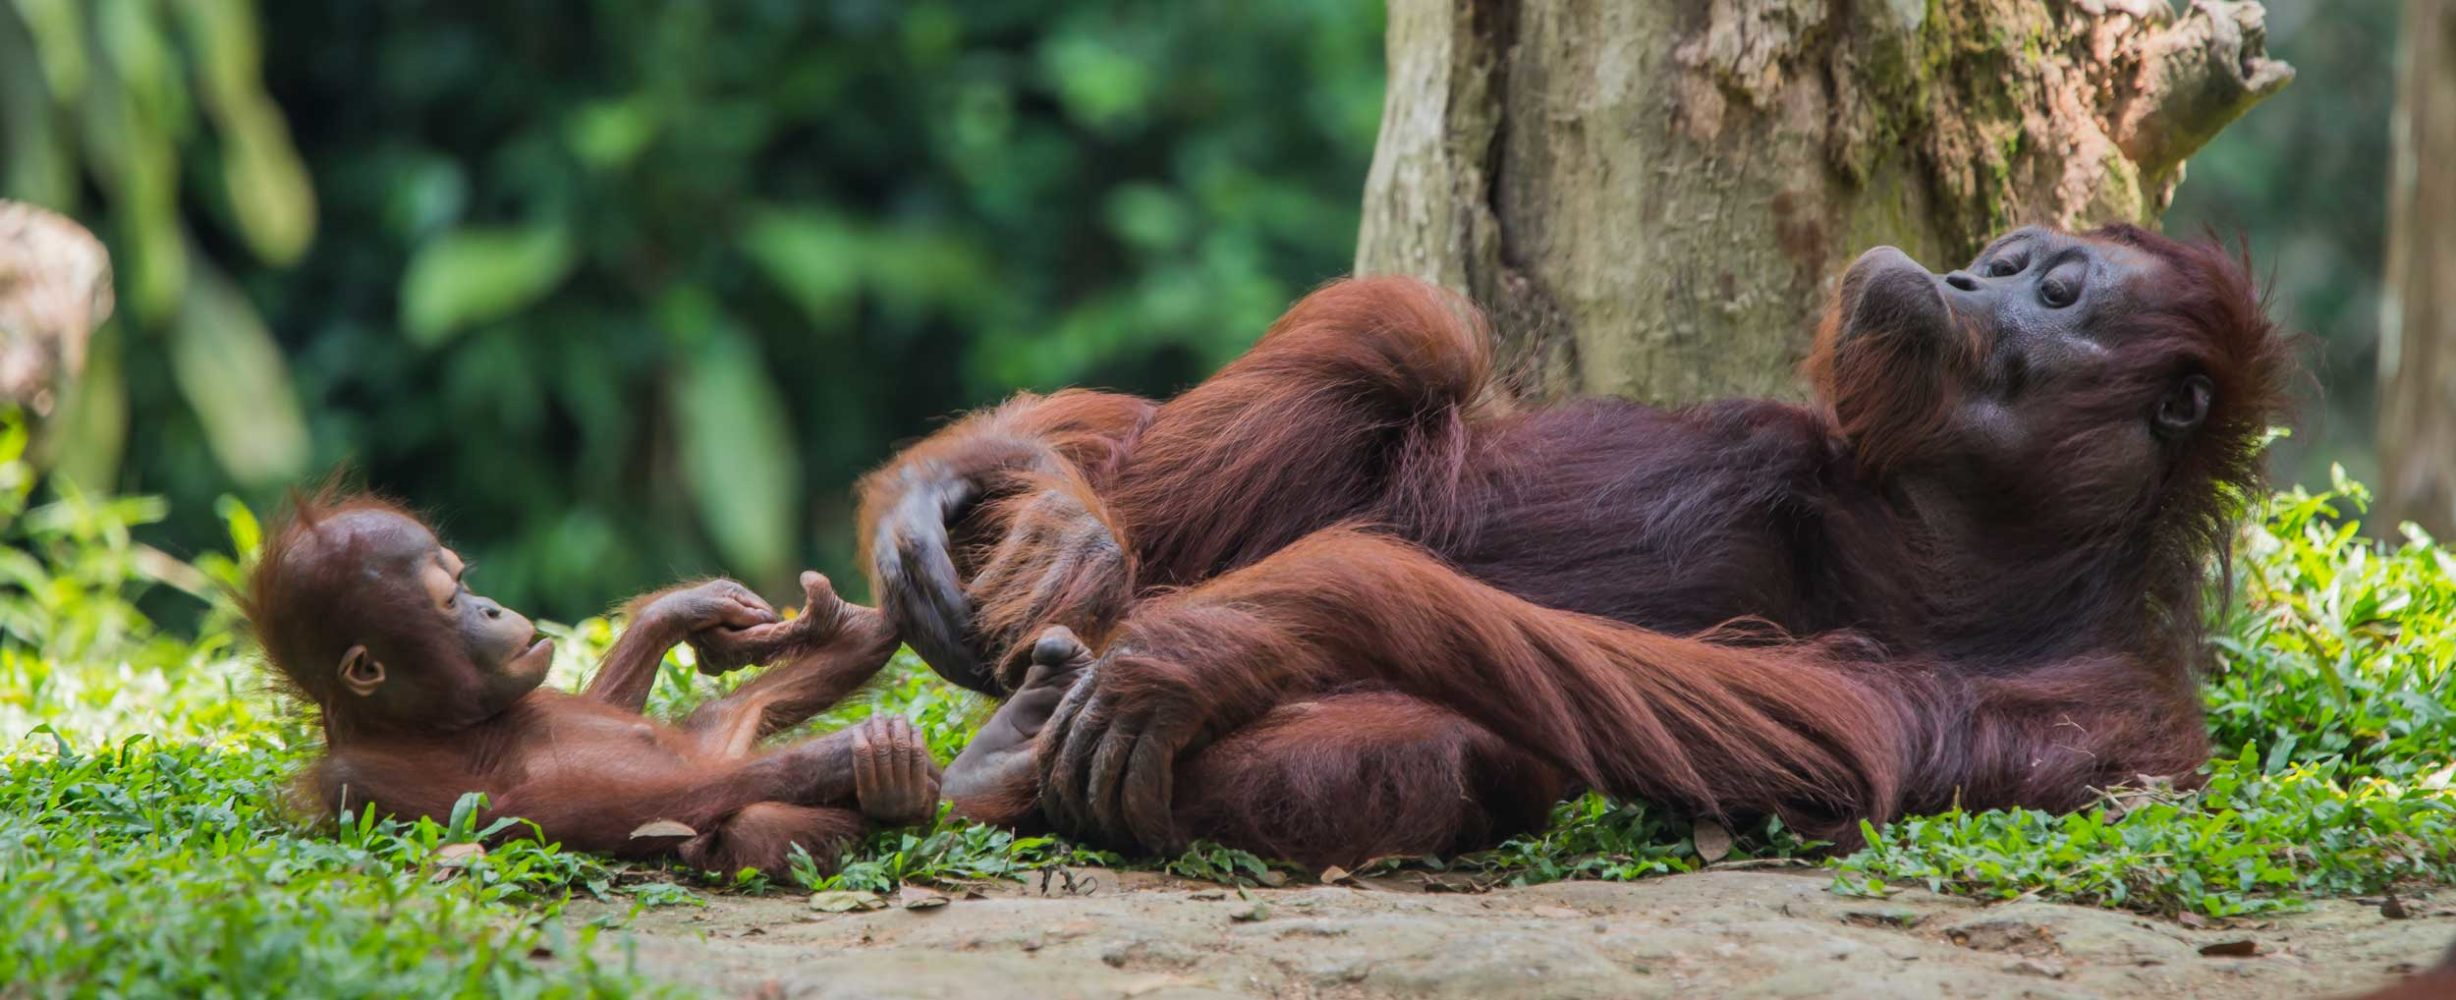 Exploring the Wilds of Malaysian Borneo